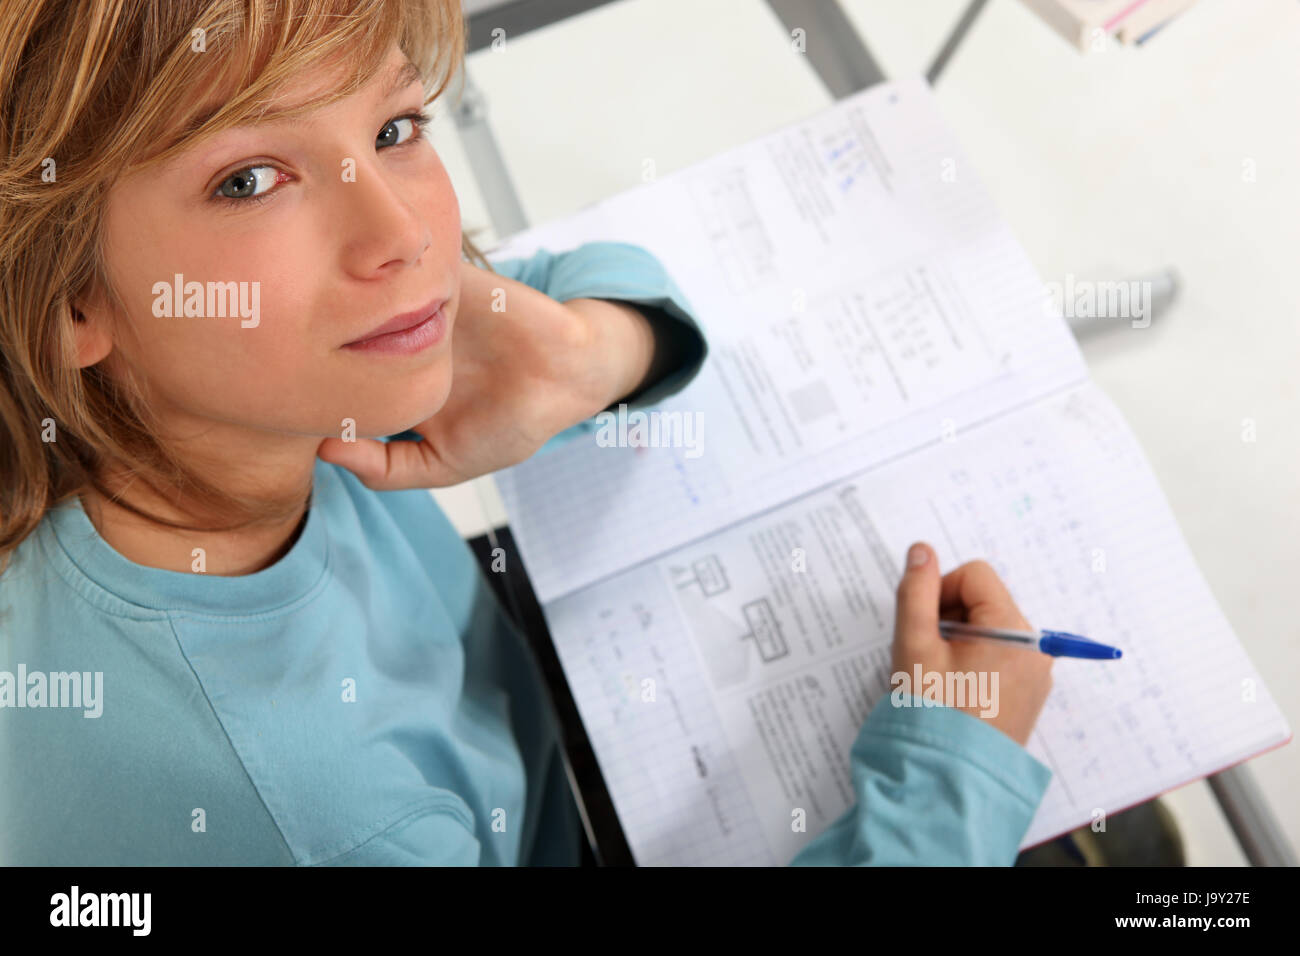 blank, european, caucasian, class, booklet, assignment, boy, lad, male - Stock Image